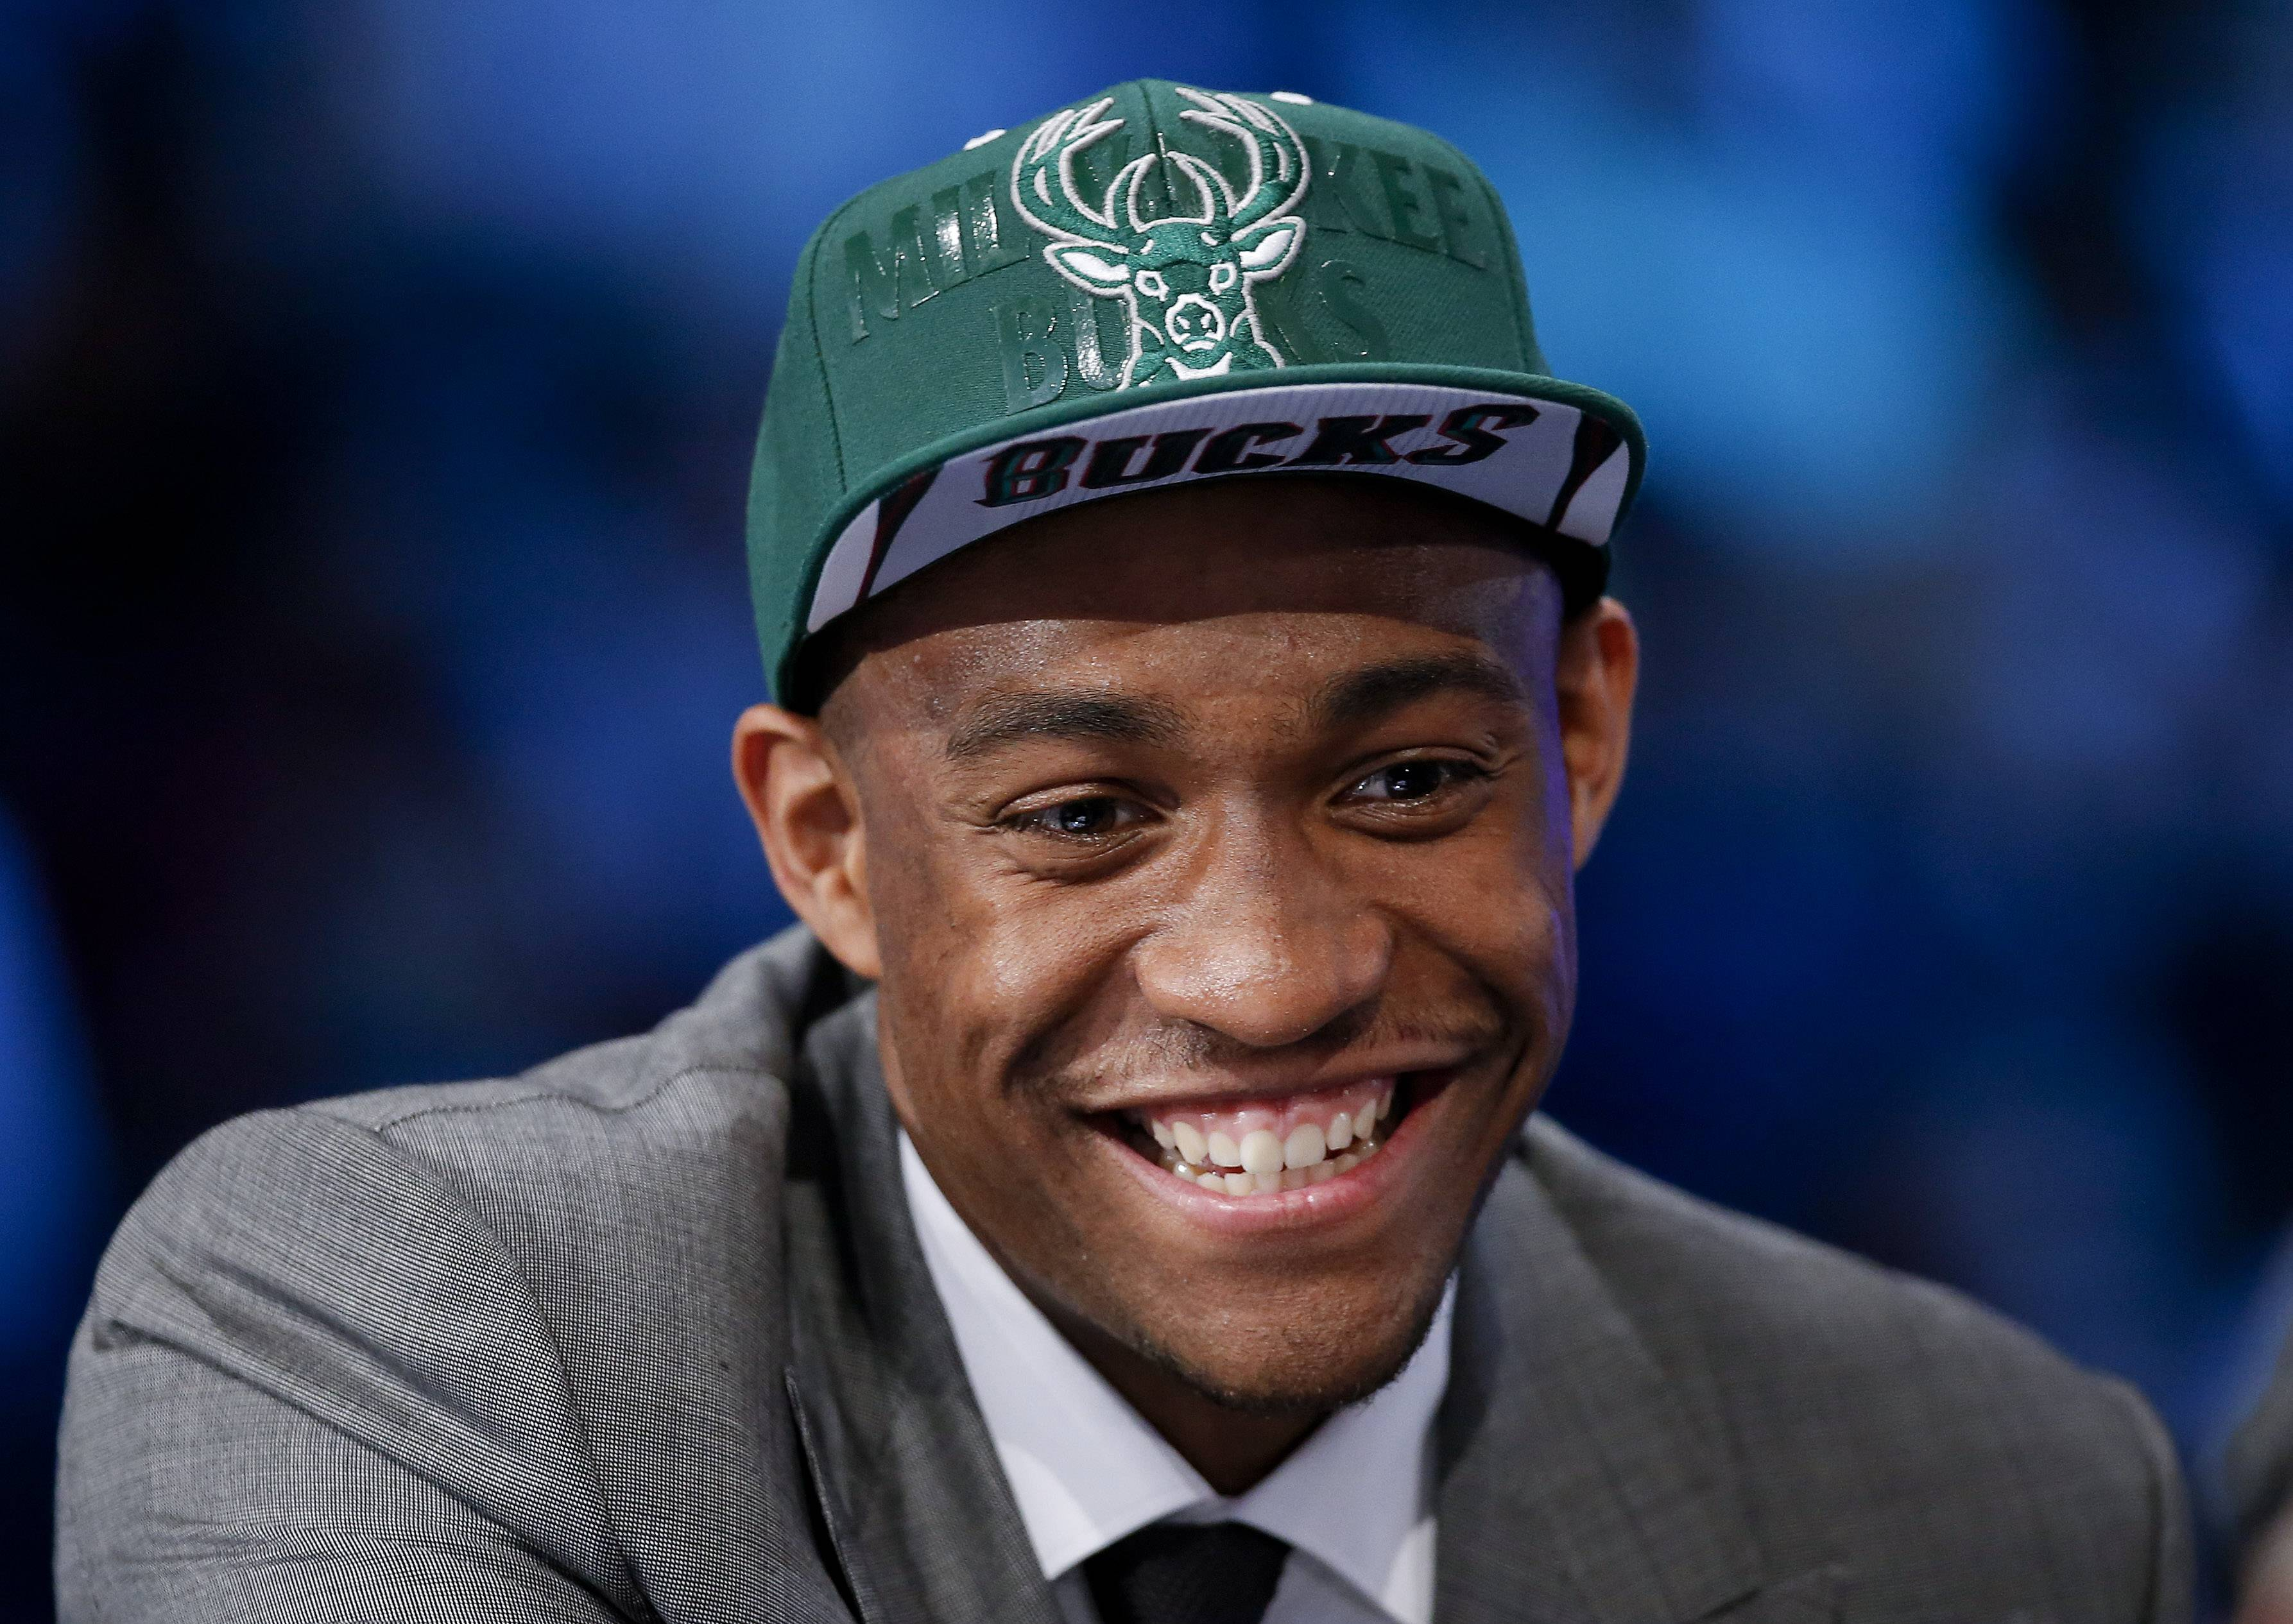 Jabari Parker of Duke answers questions during an interview after being selected by the Milwaukee Bucks as the number two overall pick during the 2014 NBA draft, Thursday, June 26, 2014, in New York. (AP Photo/Kathy Willens)